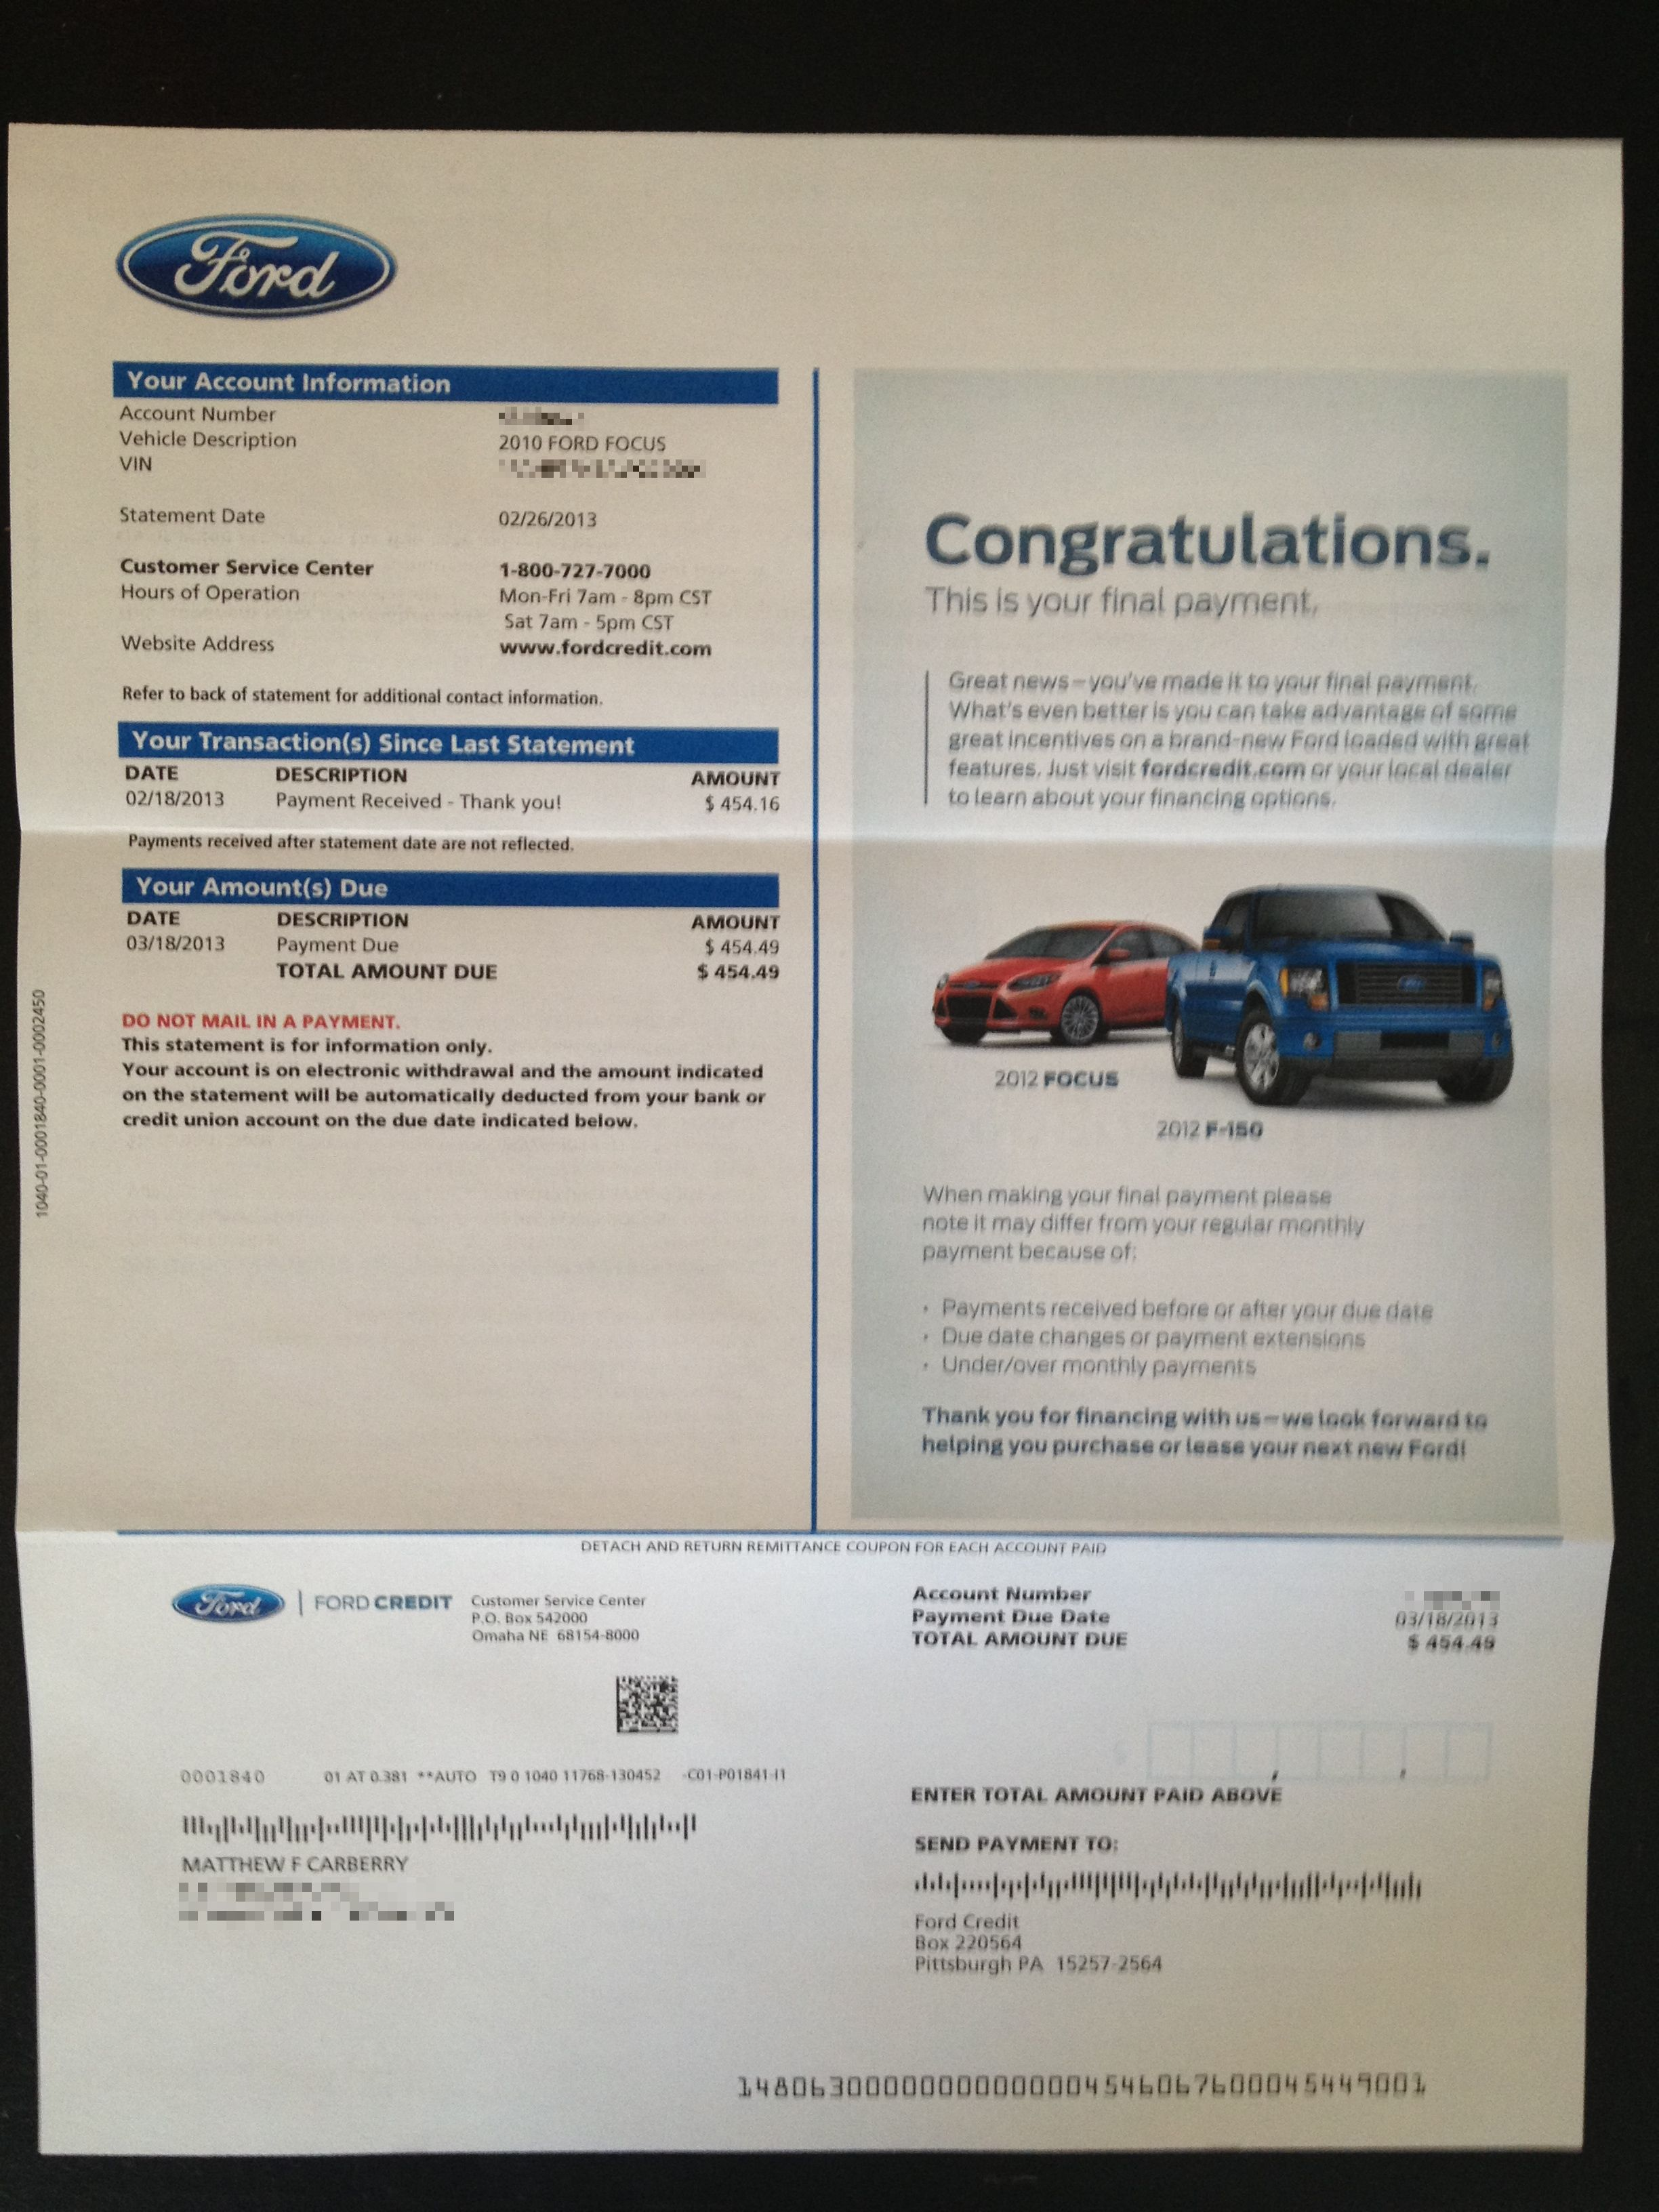 My Ford Credit >> S Sandberg Lean In M Carberry Lien Gone